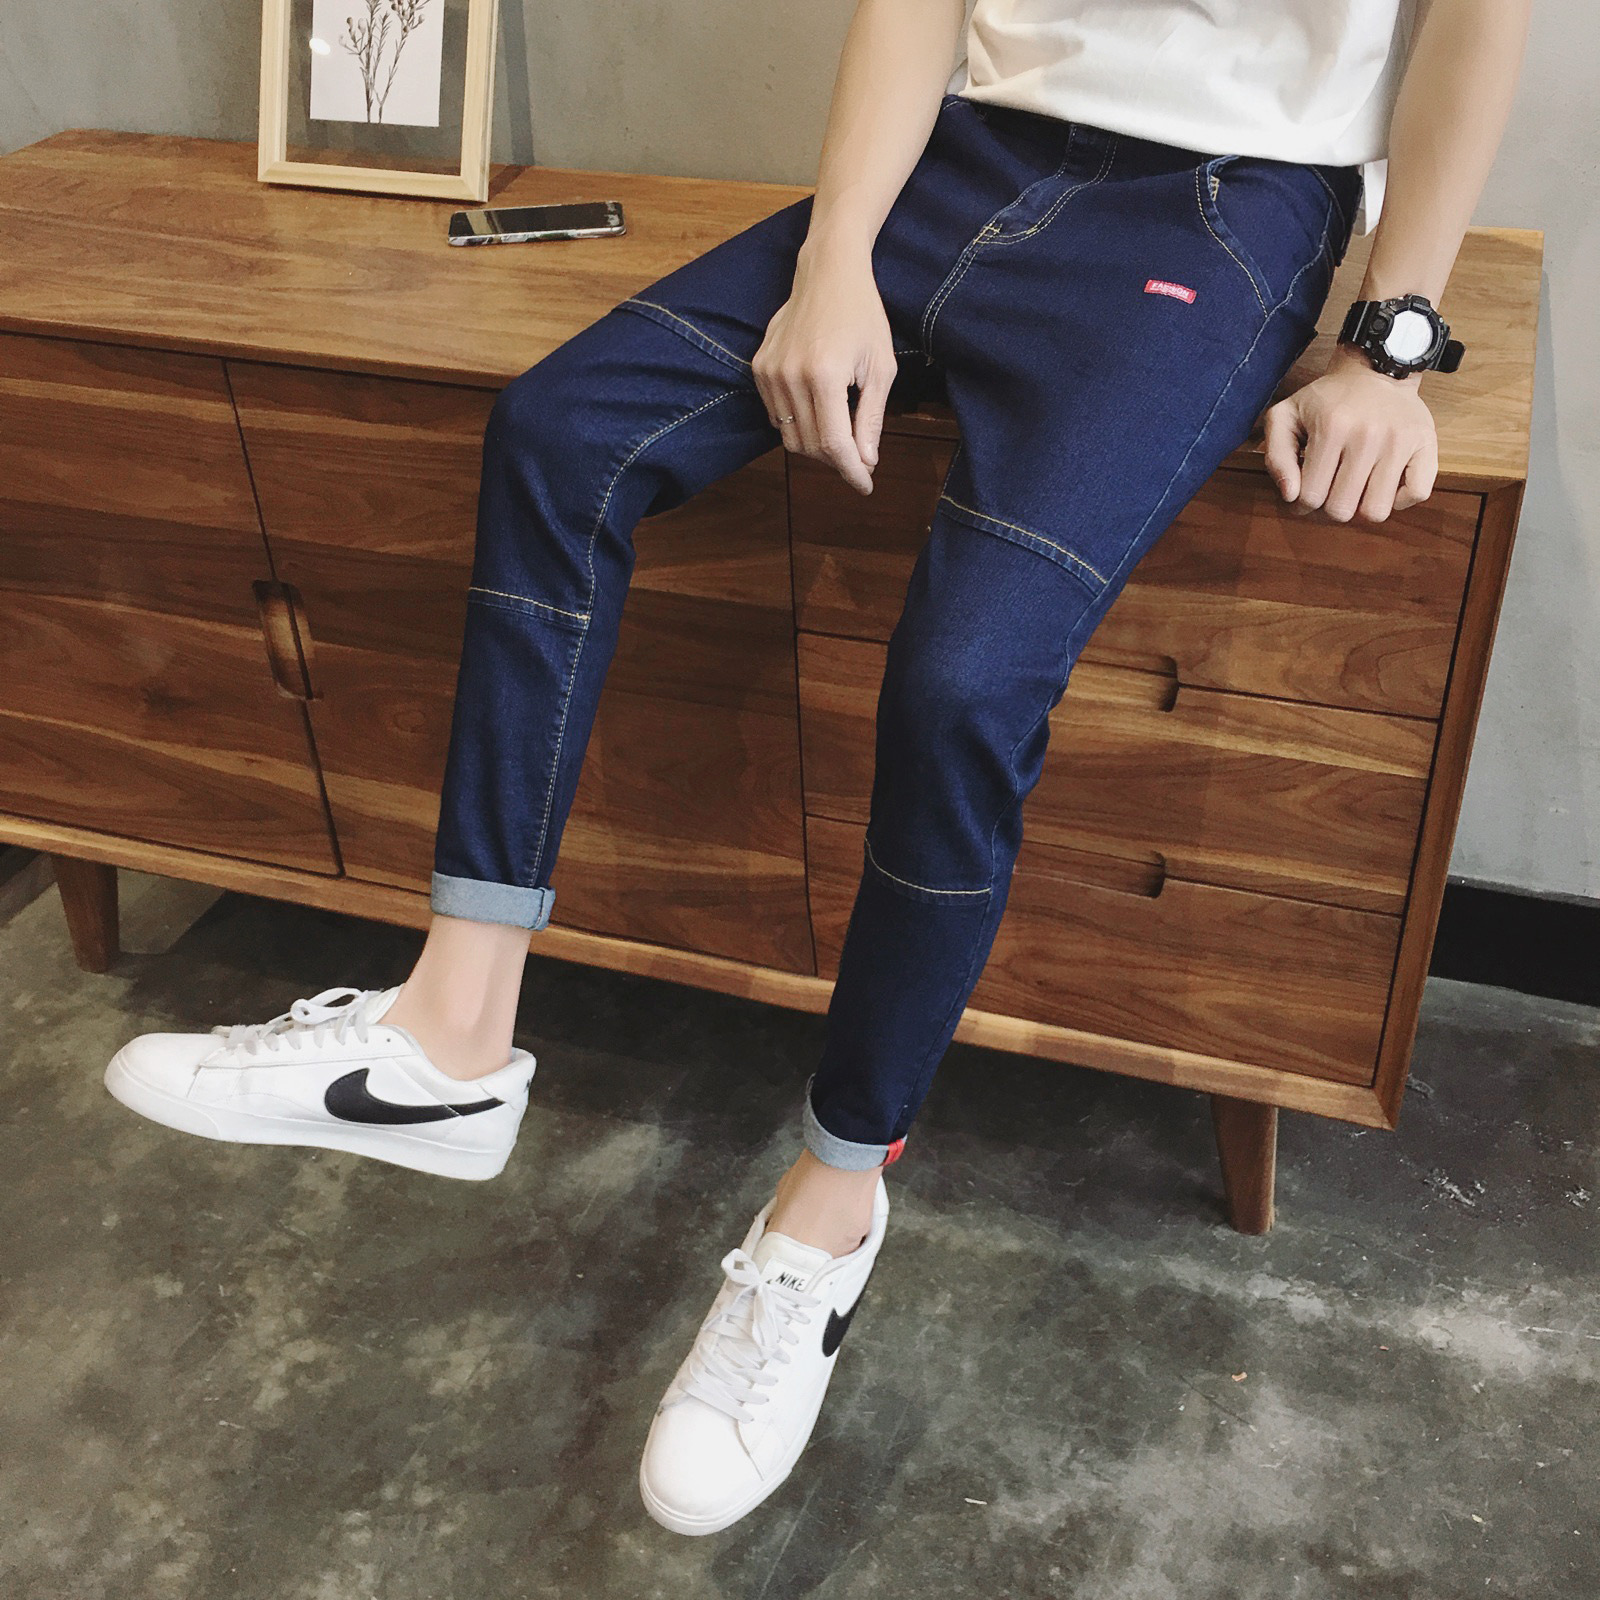 Spring And Autumn New Style Hong Kong Style Men Elasticity Capri Jeans Fashion Men'S Wear Slim Fit Pants 9 Pants